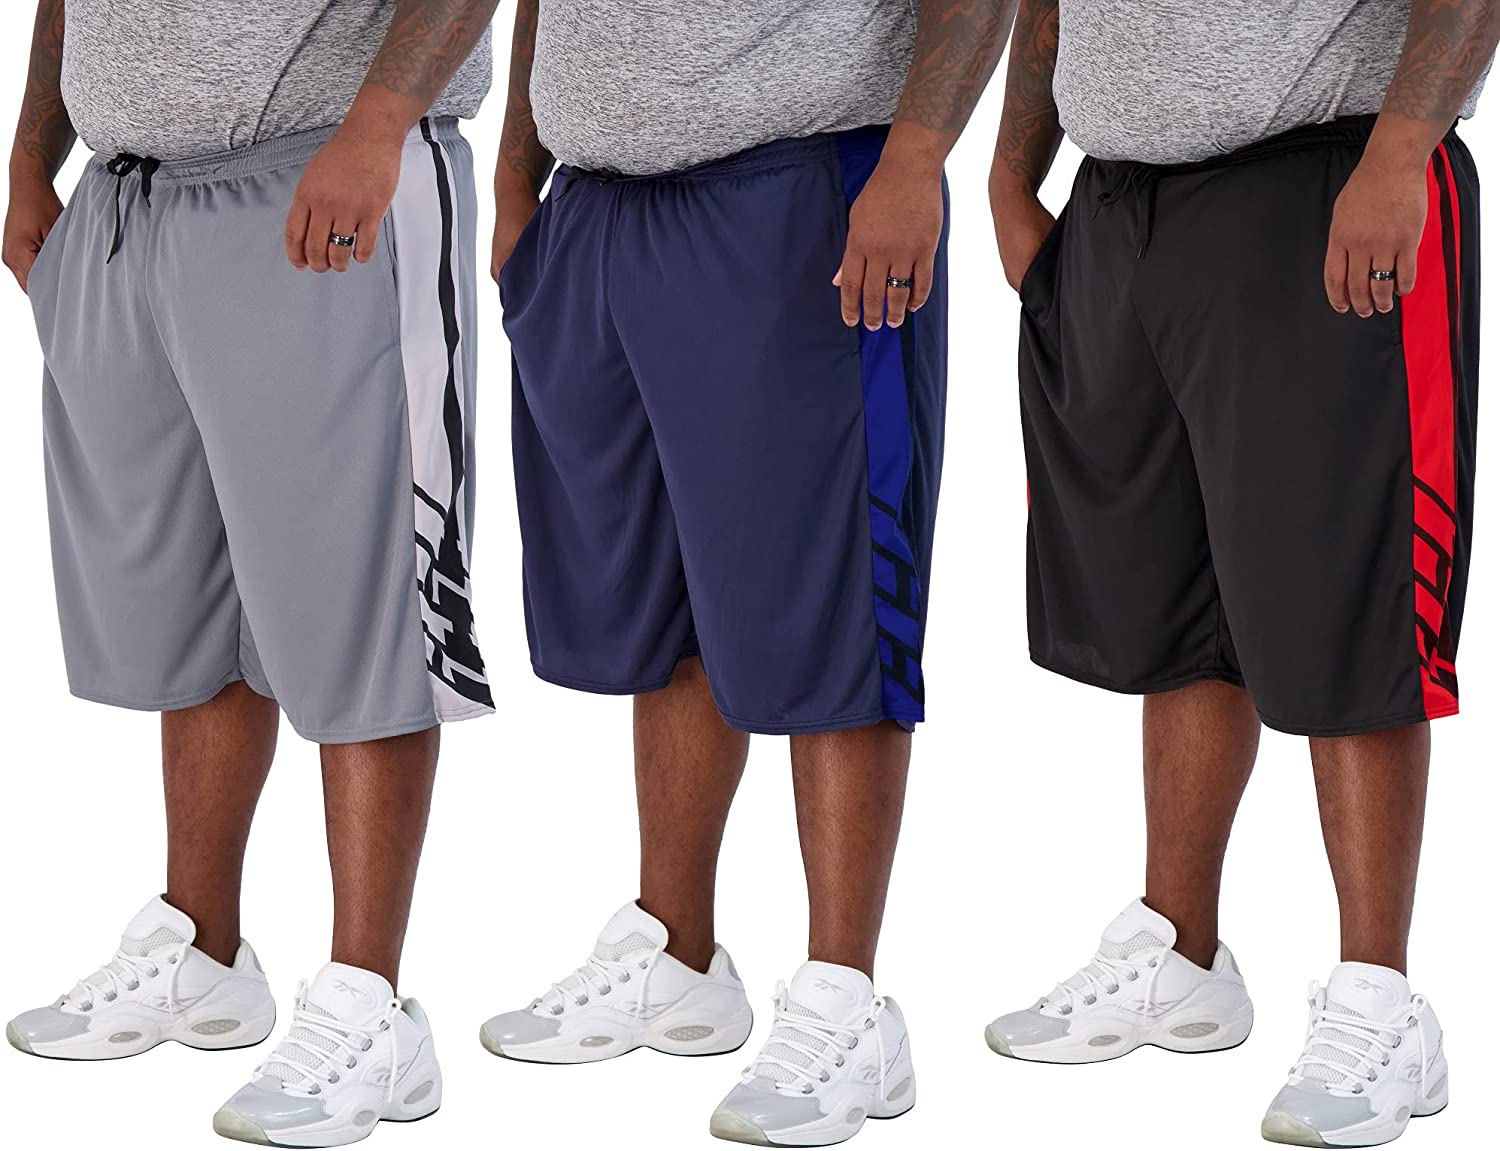 Real Essentials Men's Big & Tall 3-Pack Dry Fit & Mesh Active Athletic Perfomance Shorts (3X-5X)